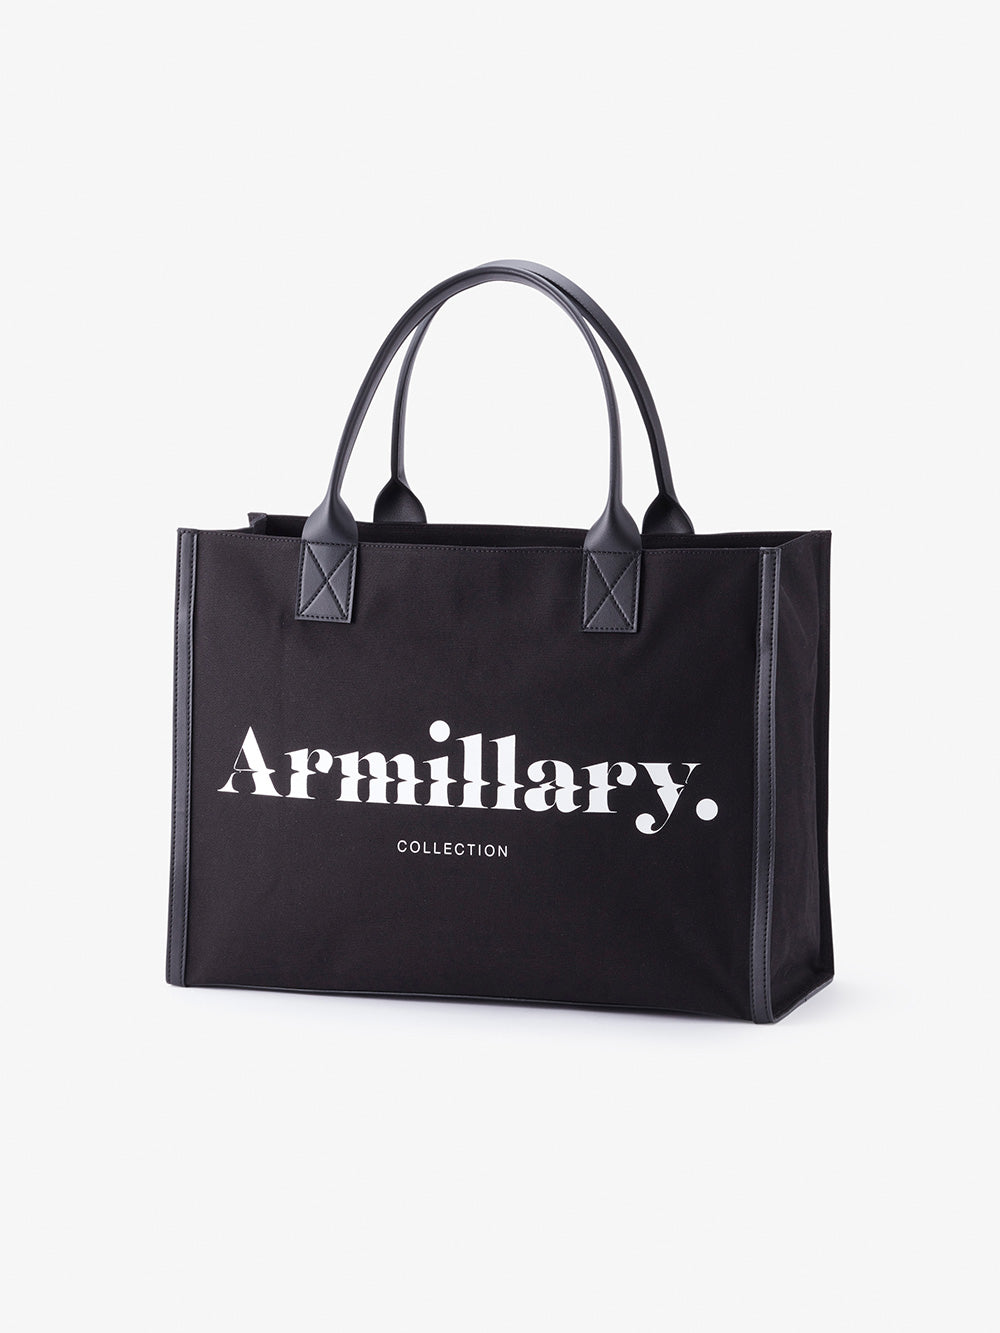 Armillary. CANVAS TOTE BAG<br>BLACK